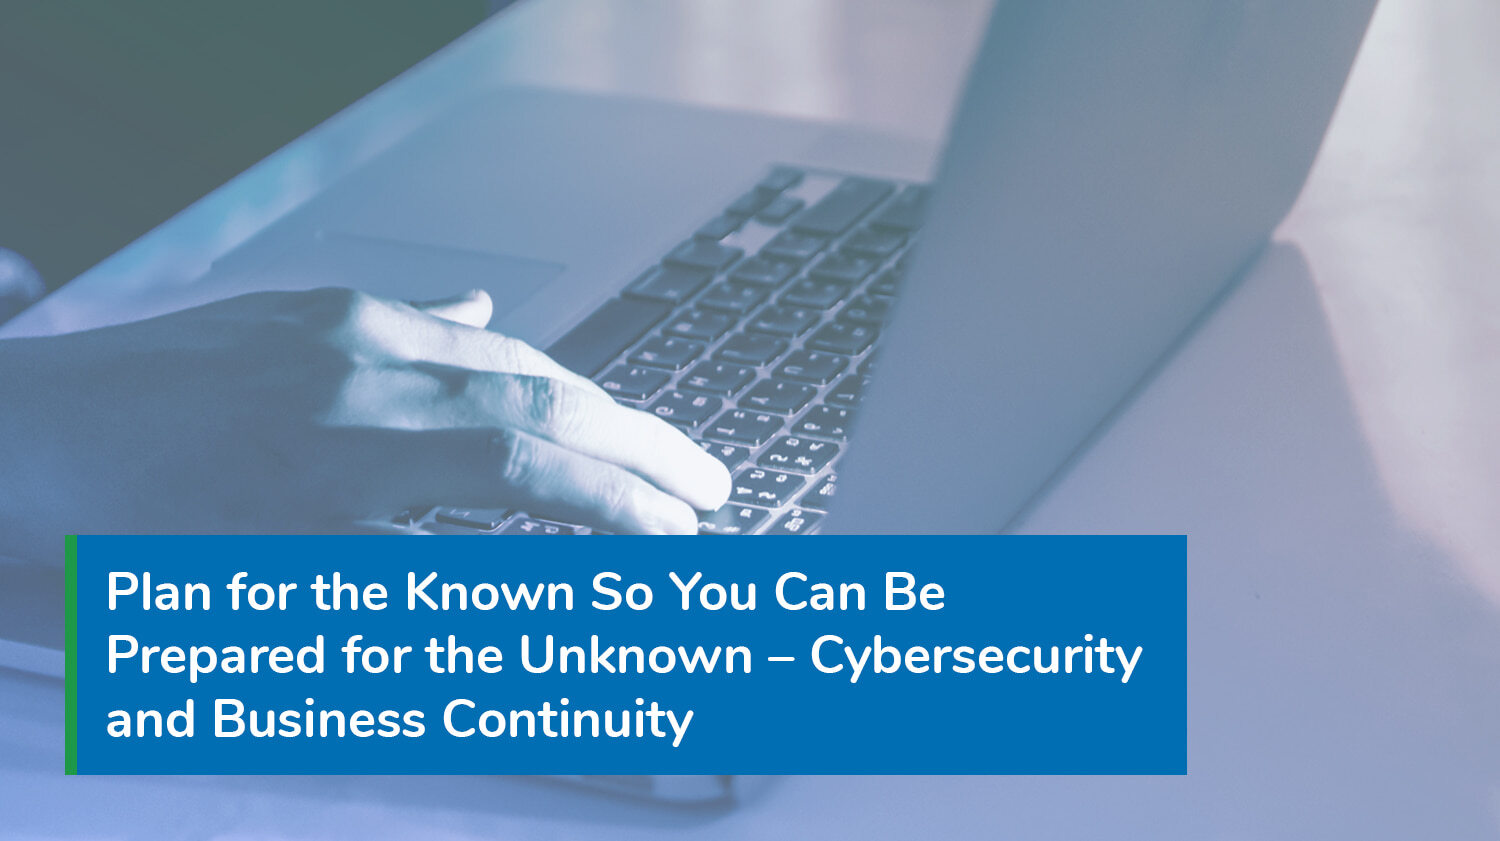 Cybersecurity and business continuity